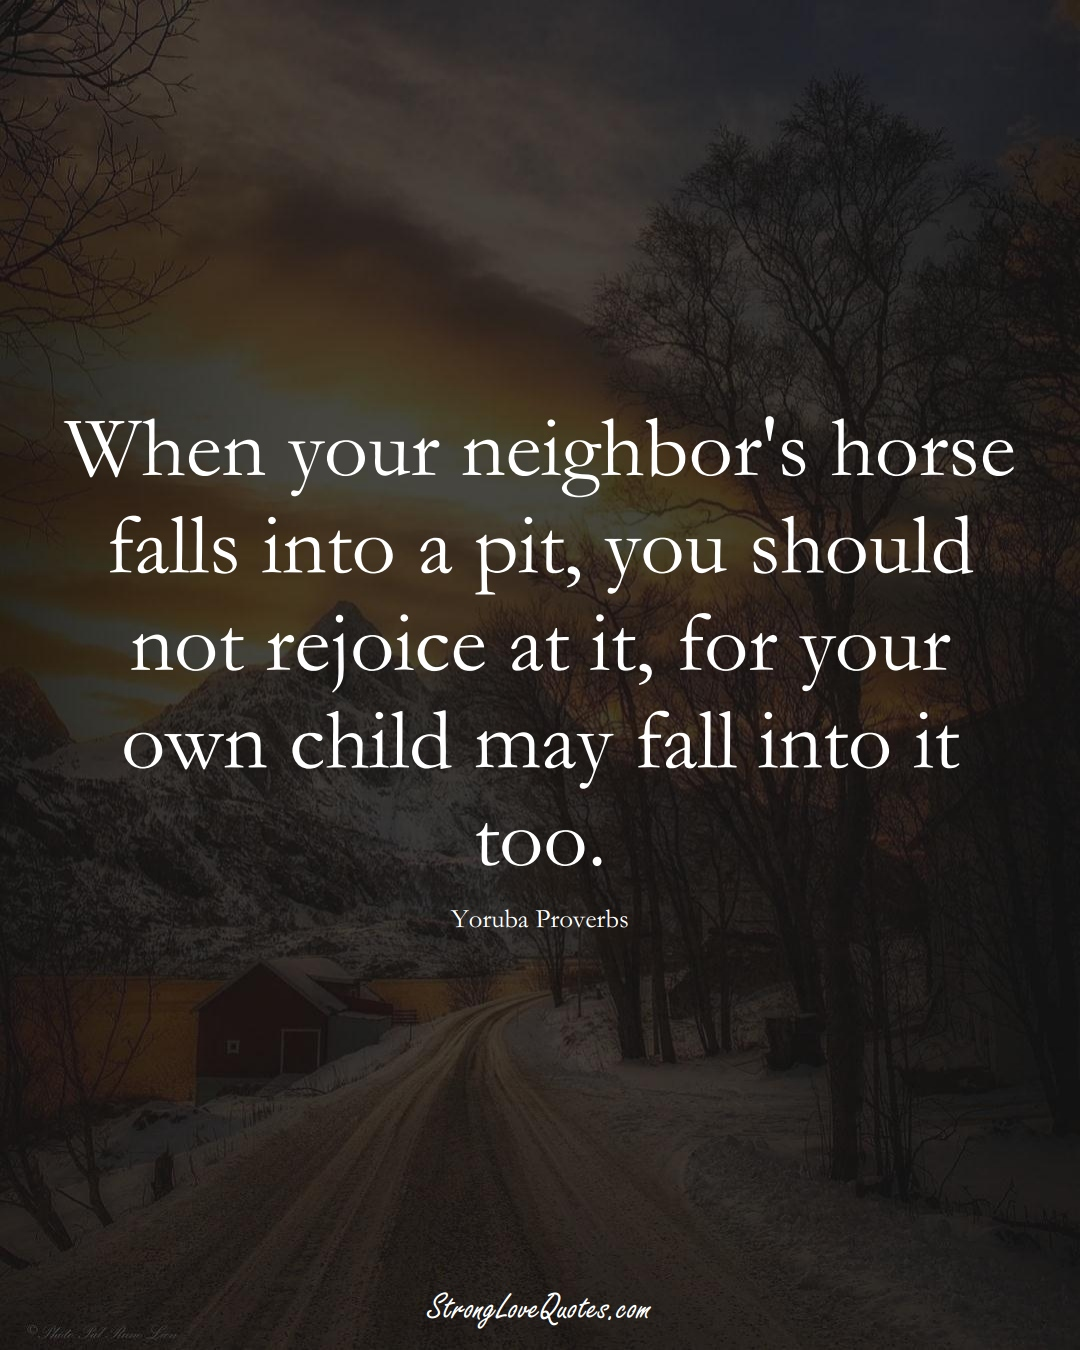 When your neighbor's horse falls into a pit, you should not rejoice at it, for your own child may fall into it too. (Yoruba Sayings);  #aVarietyofCulturesSayings